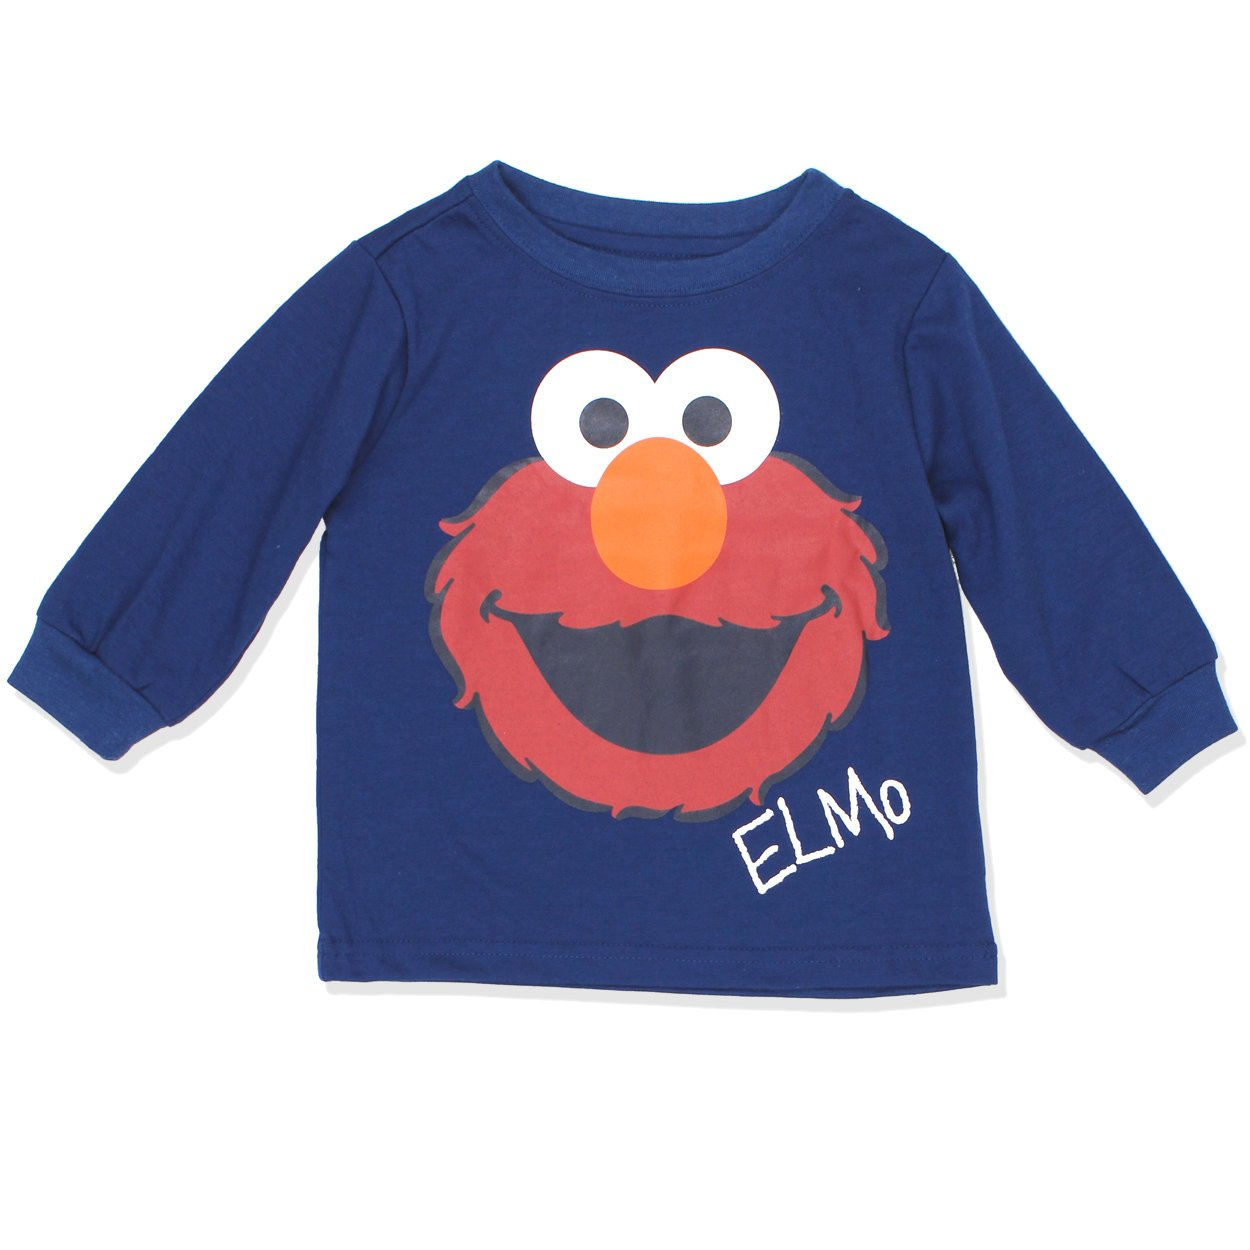 Cool Elmo Shirts For Toddlers Bcd Tofu House